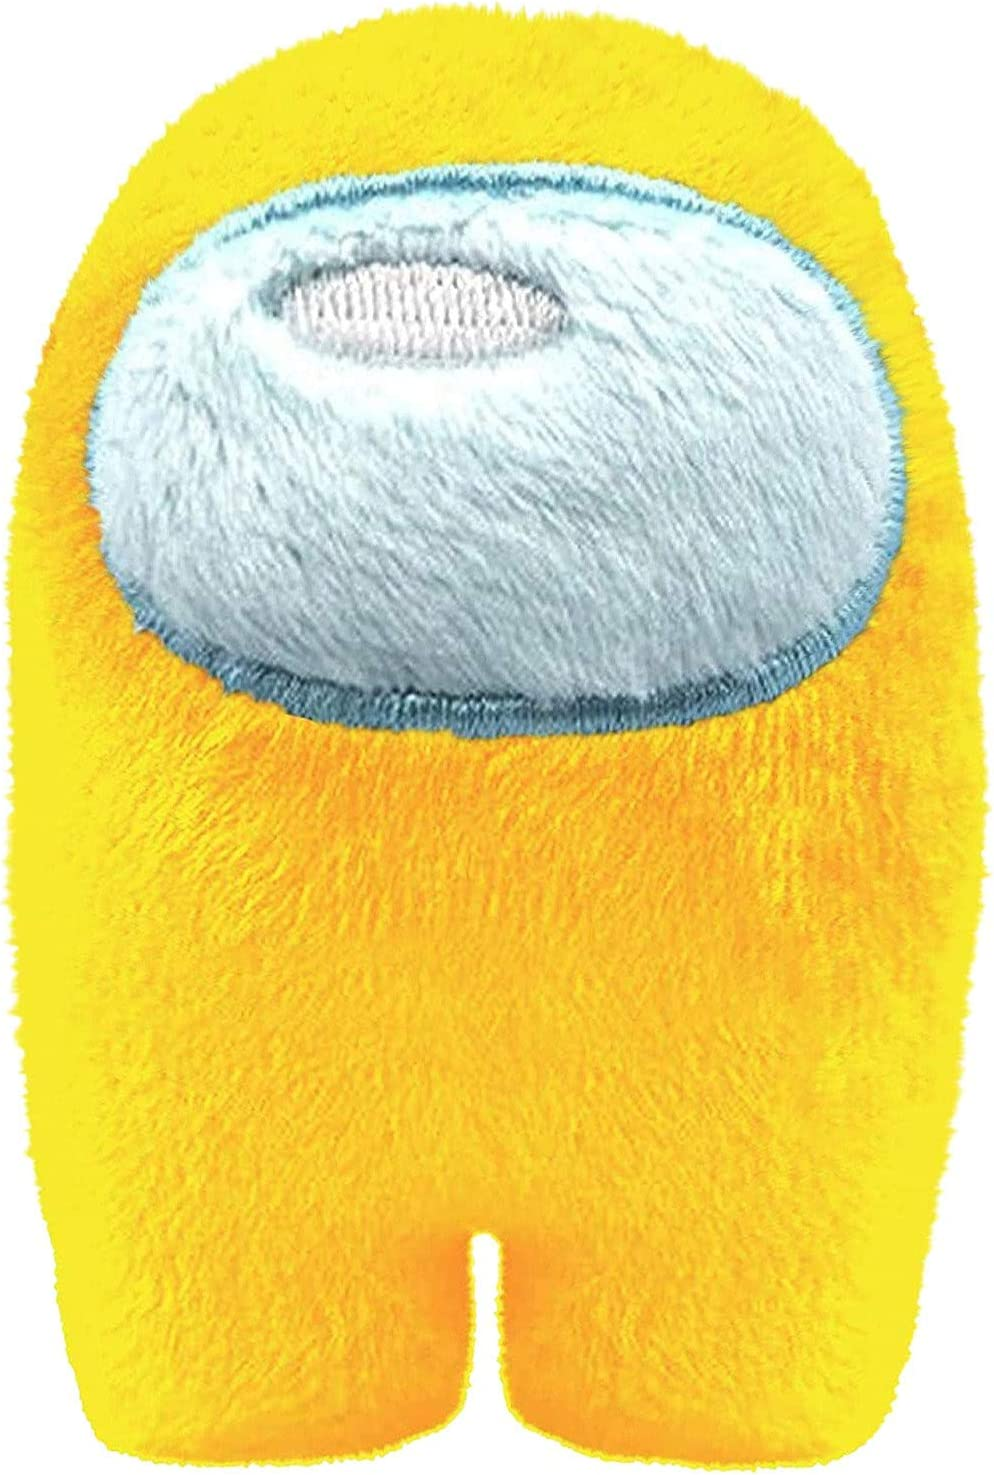 KKPOT Among Us Plush Toys Among Us Merch Soft Plushie Doll Gifts for Game Fans 3.9 inch Red+Blue